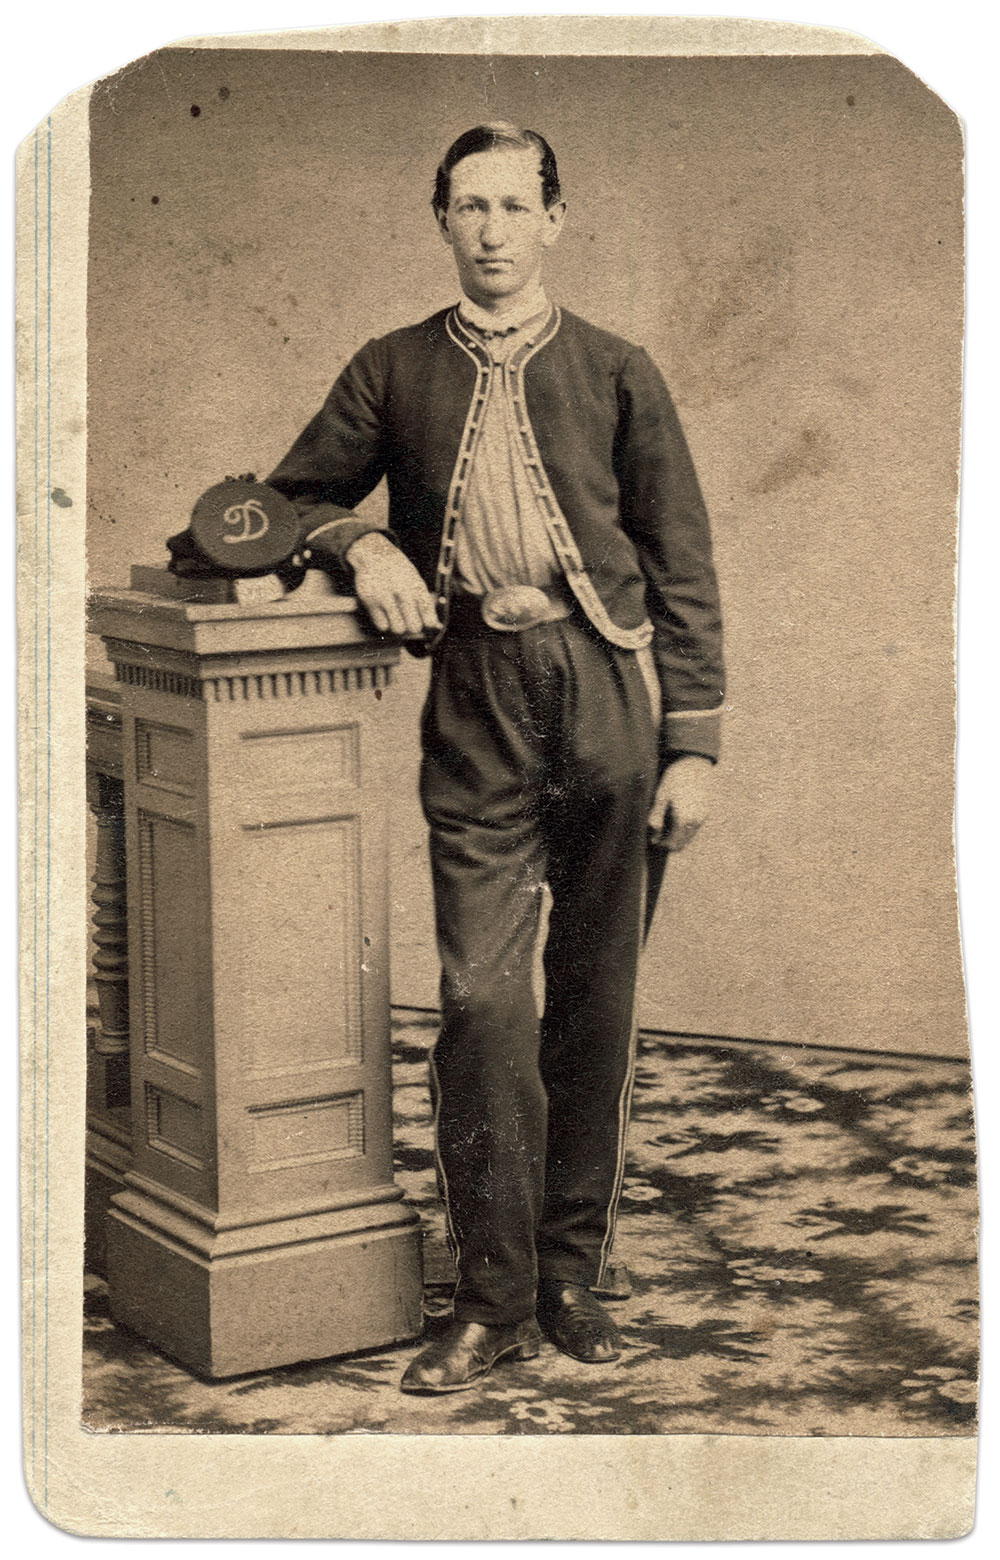 Carte de visite by S. J. Thompson & Co. of Albany, N.Y.